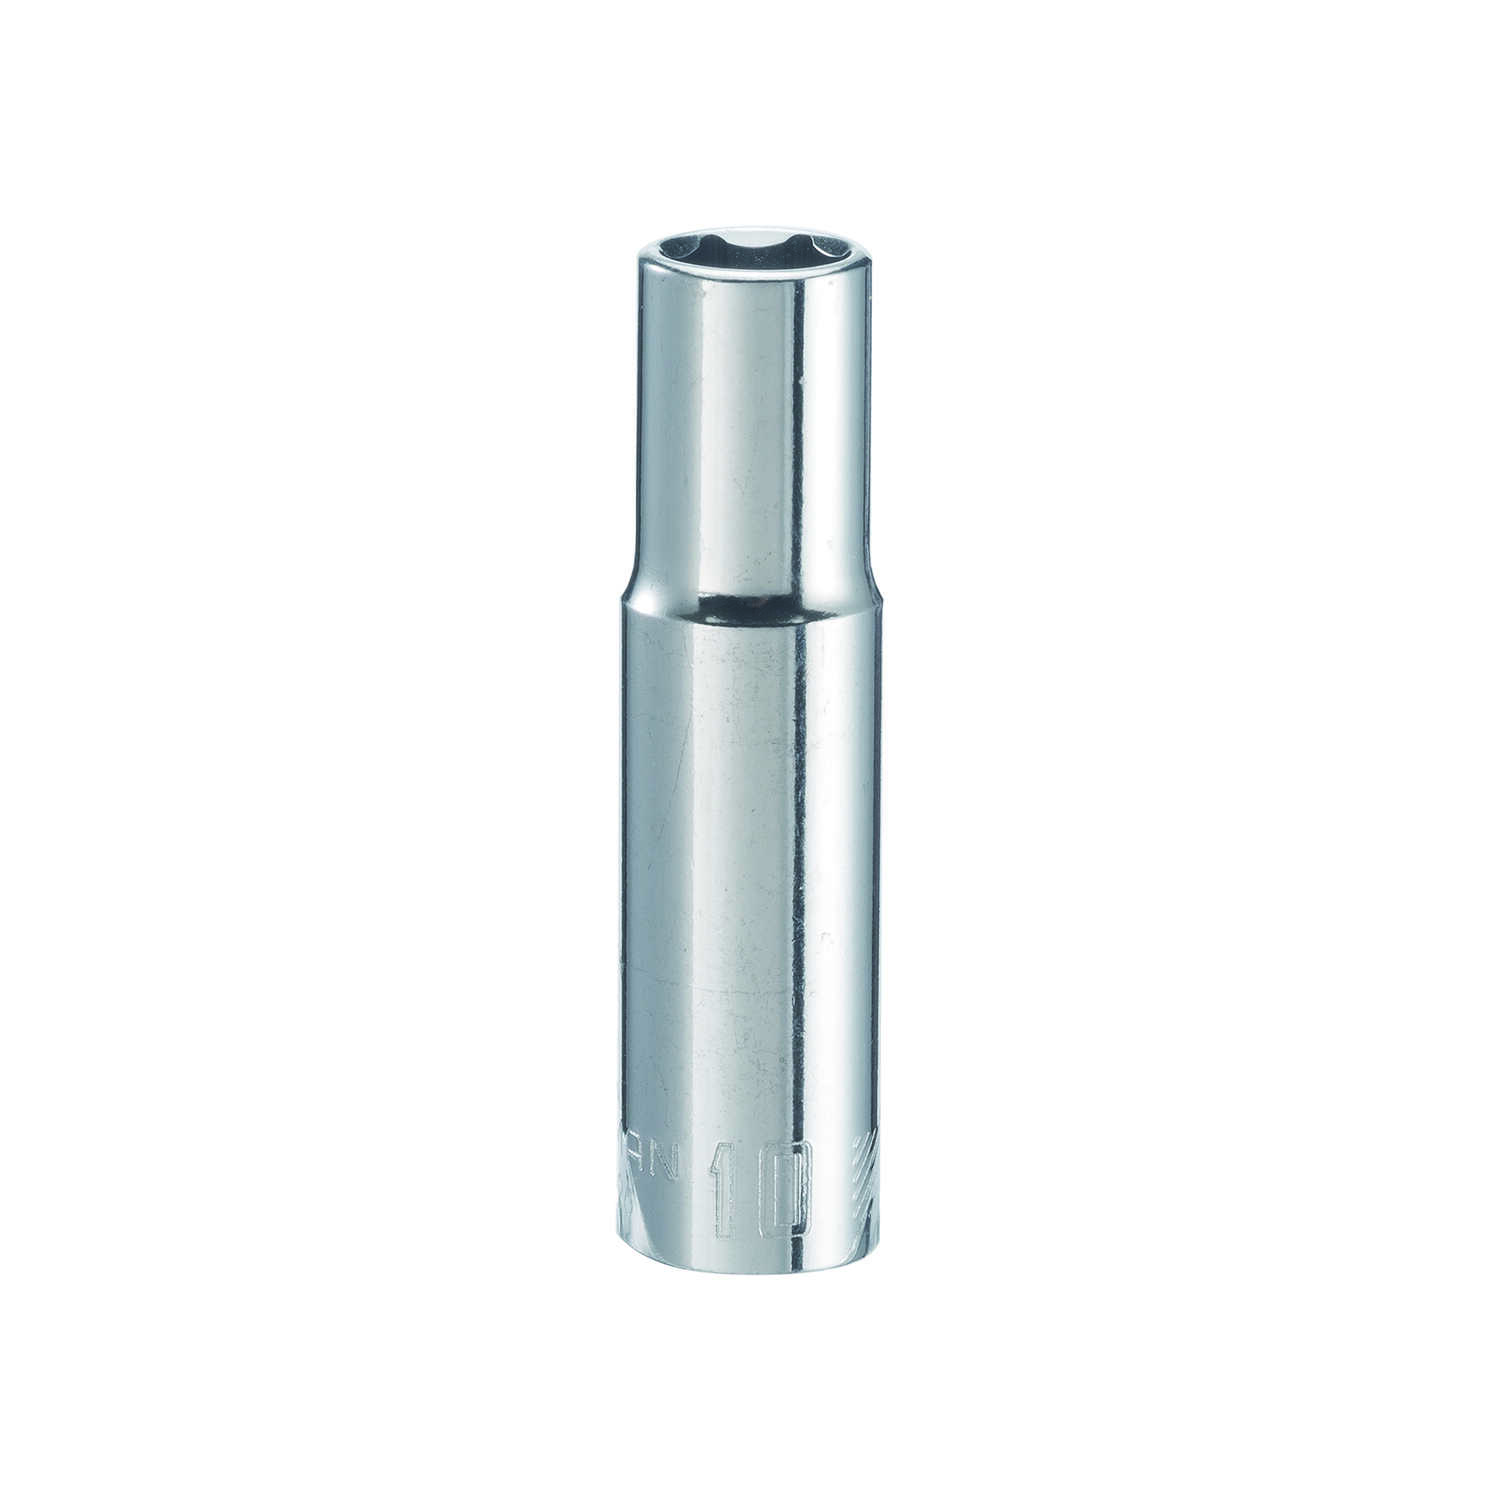 Craftsman  10 mm  x 3/8 in. drive  Metric  6 Point Deep  Socket  1 pc.